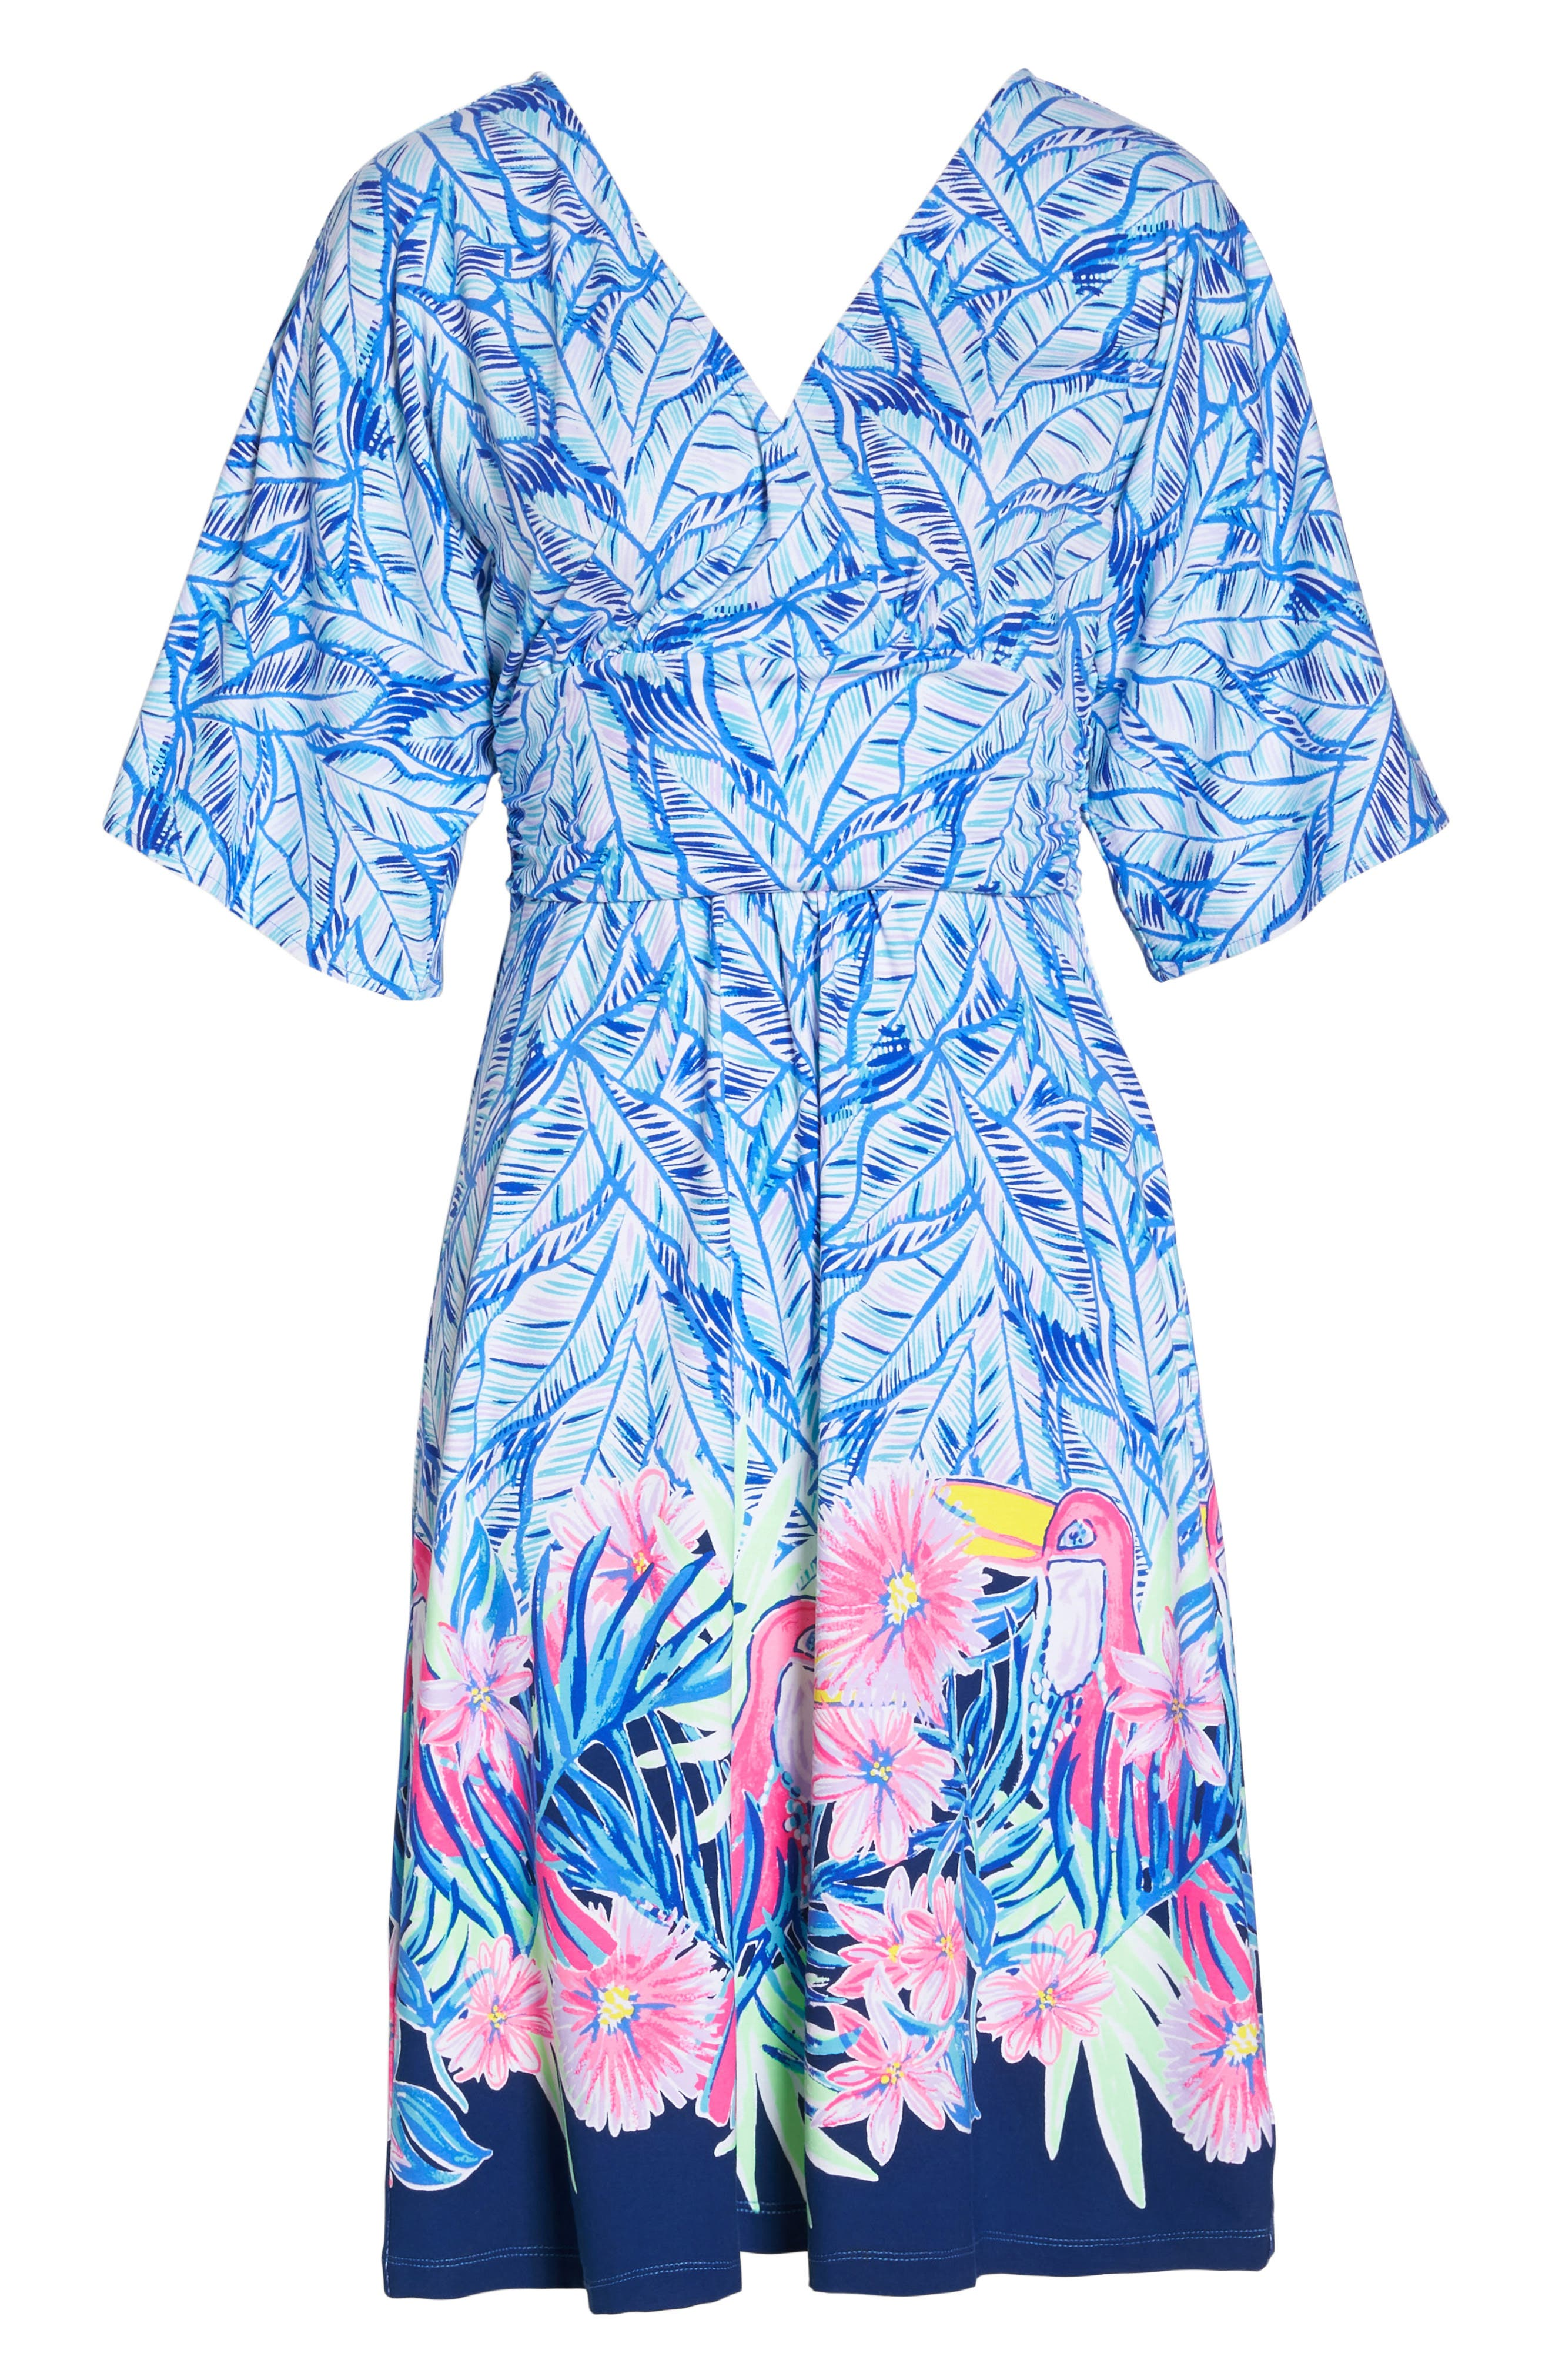 Parigi Print Dress,                             Alternate thumbnail 7, color,                             420